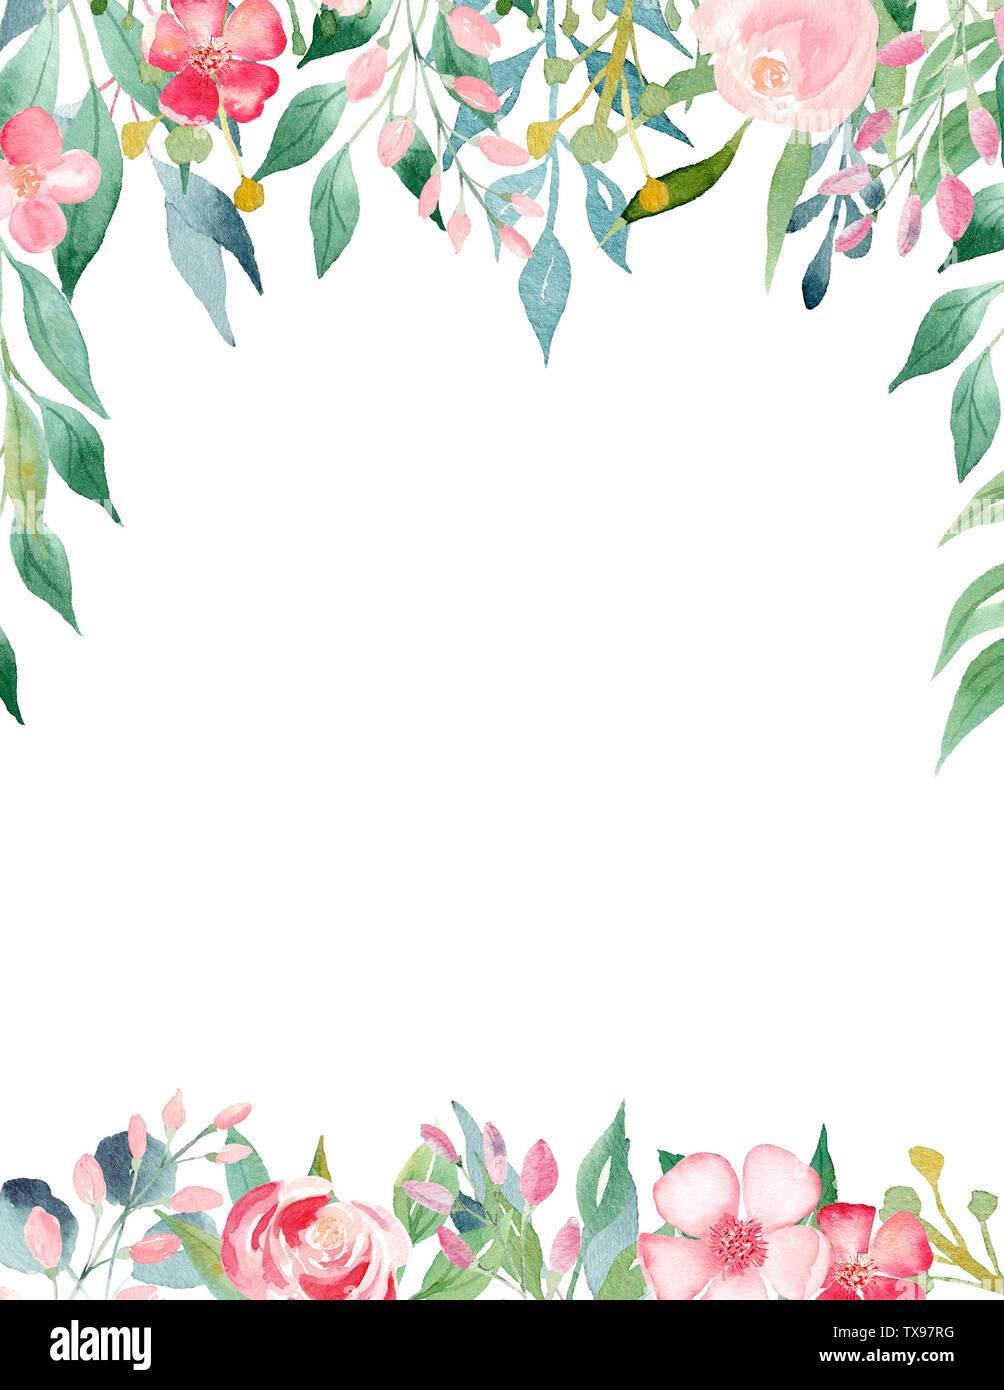 Pink Gentle Blossom Watercolor Hand Drawn Raster Frame Template